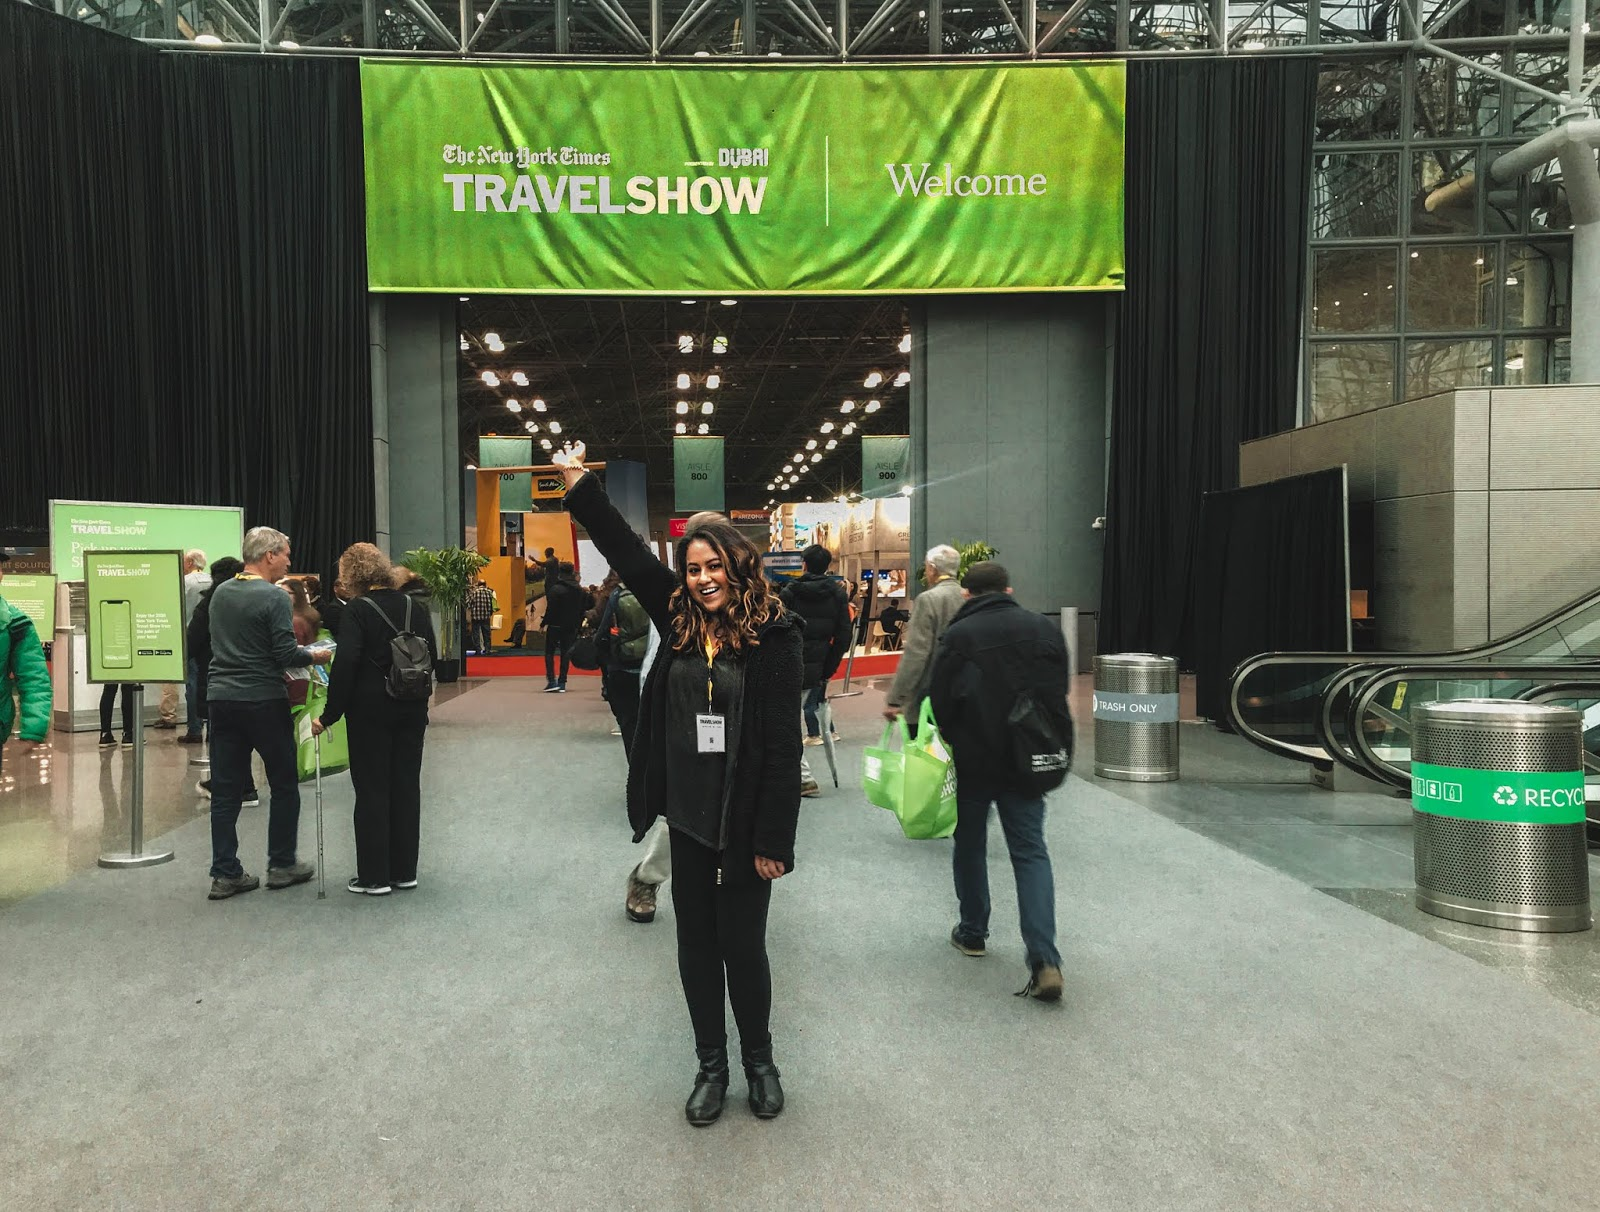 New York Times Travel Show 2020